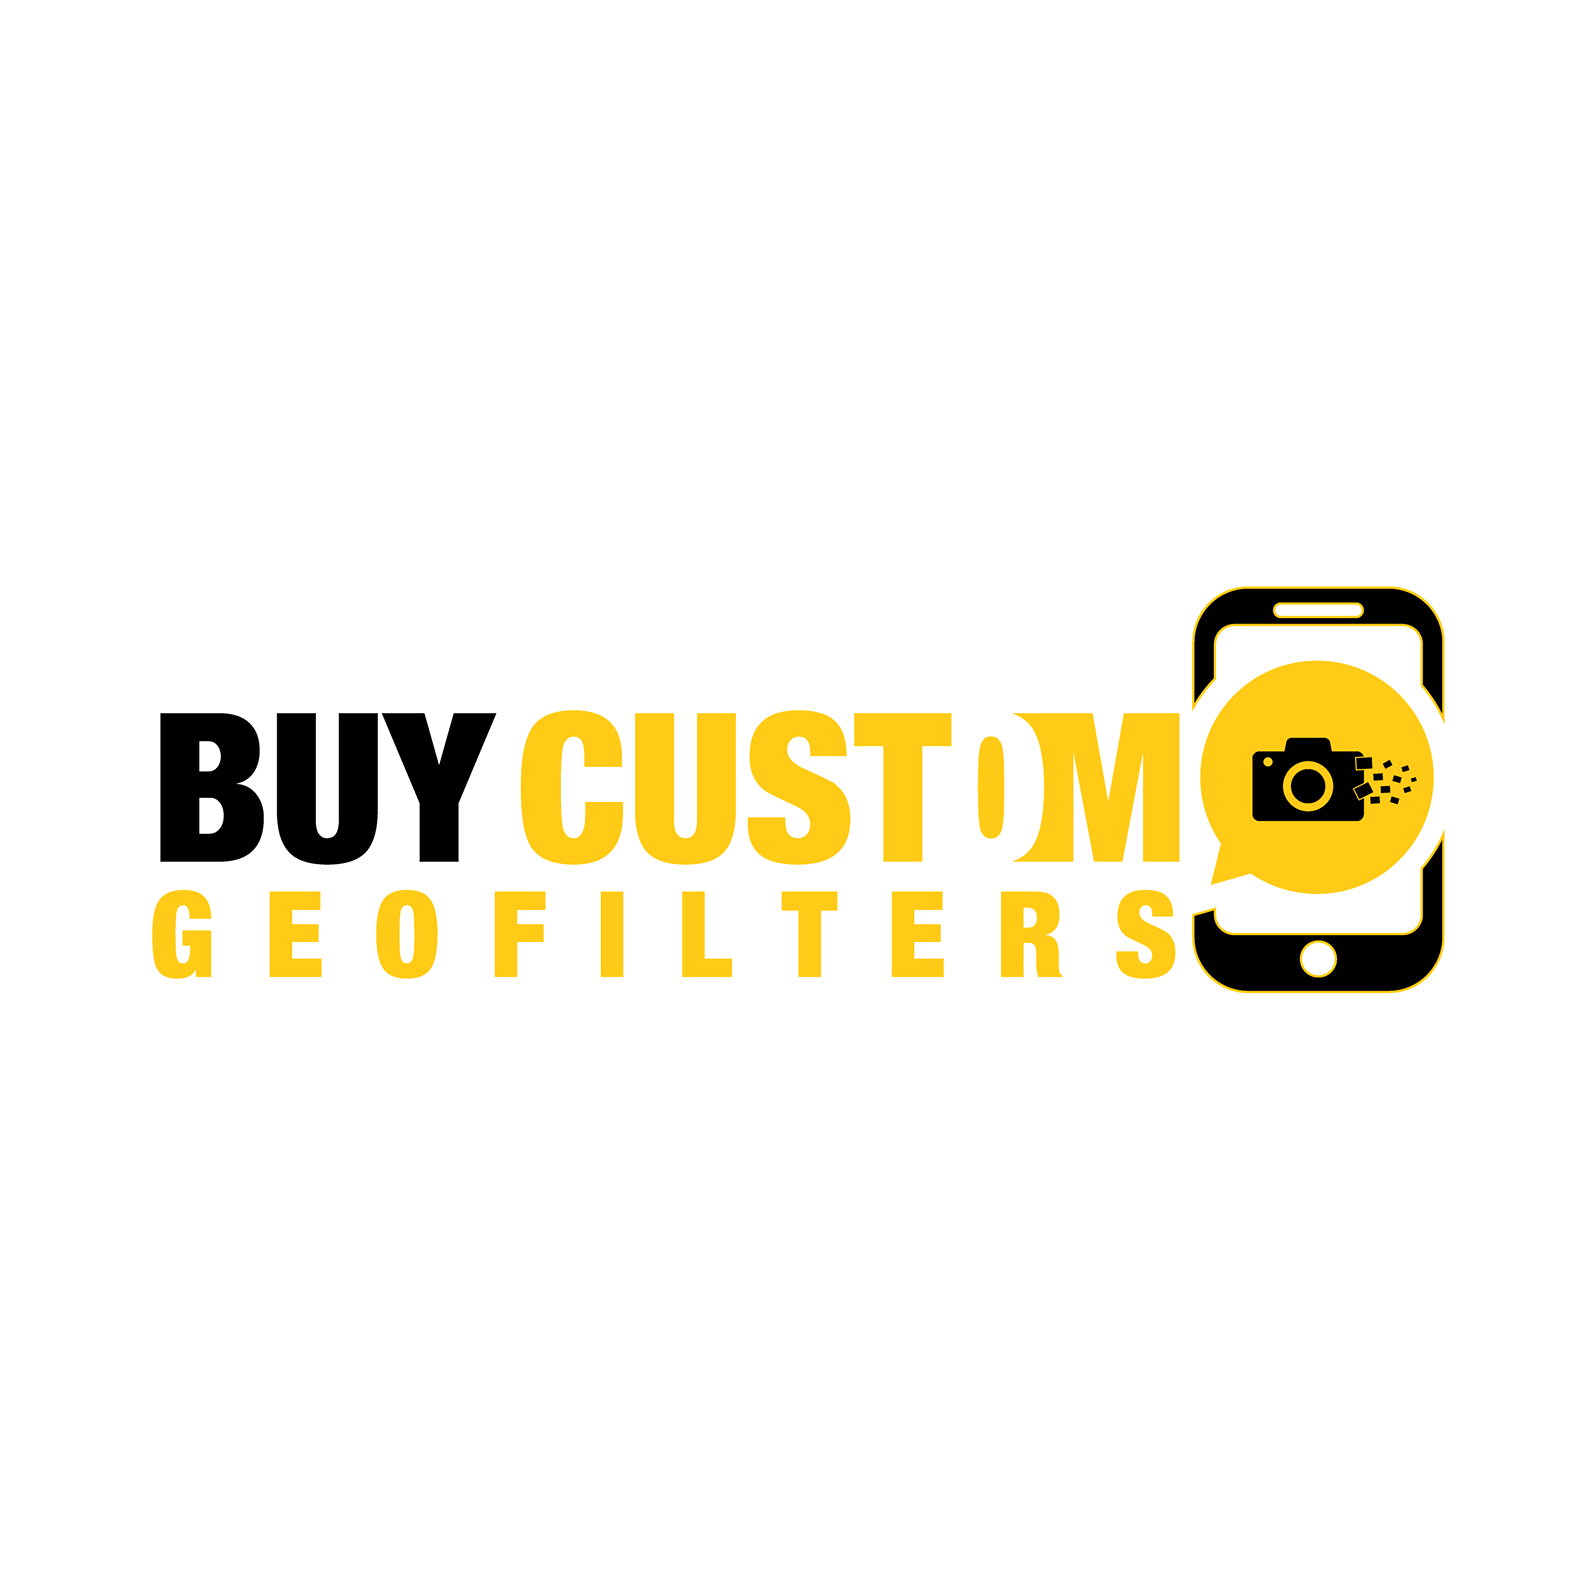 BuyCustomGeofilters.com - BuyCustomGeofilters.com is a custom Snapchat Geofilter company that creates customized filters that services Fortune 500 clients and personal occasions.The company was started in May 2016 and has been featured in major publications such as USA Today, Forbes CNET, CBS, BBC, MSN, and more.